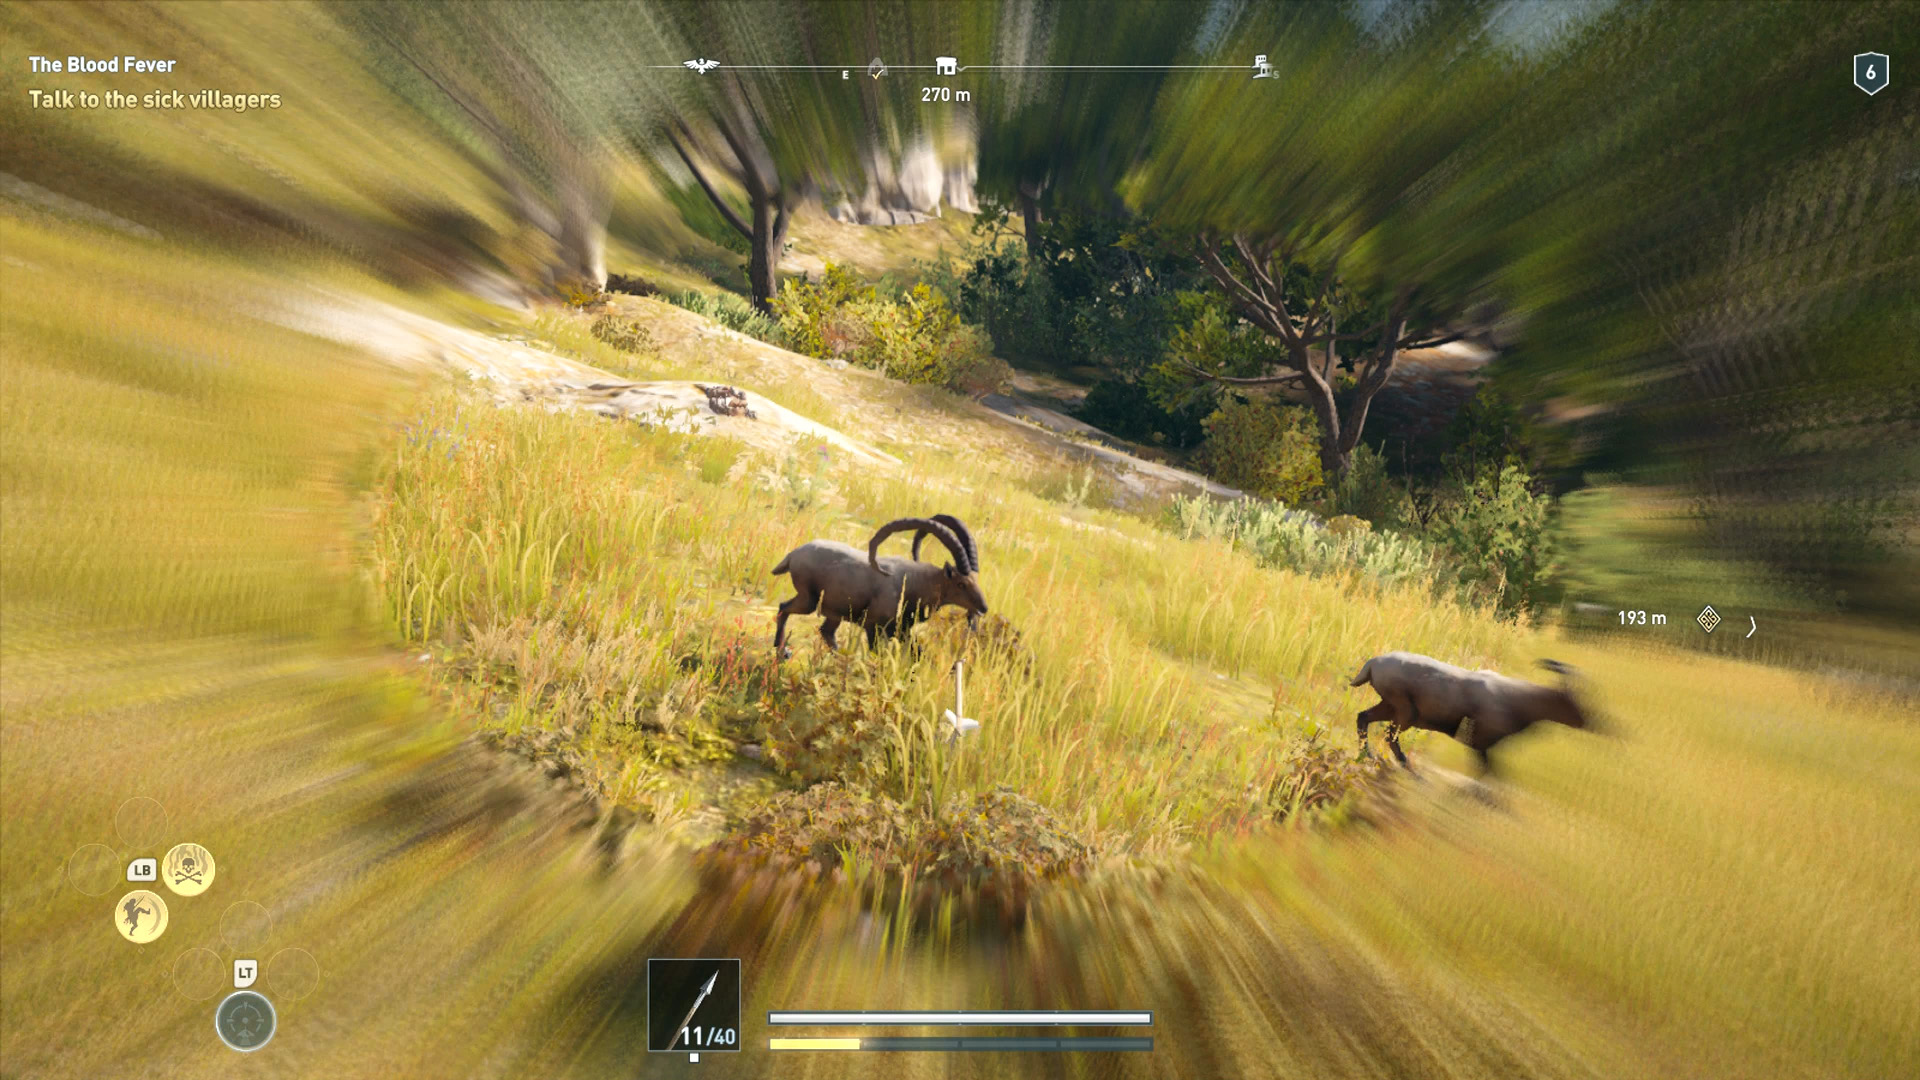 Kassandra is using Predator Shot to make the arrow move in mid-flight, targeting the male Ibex.